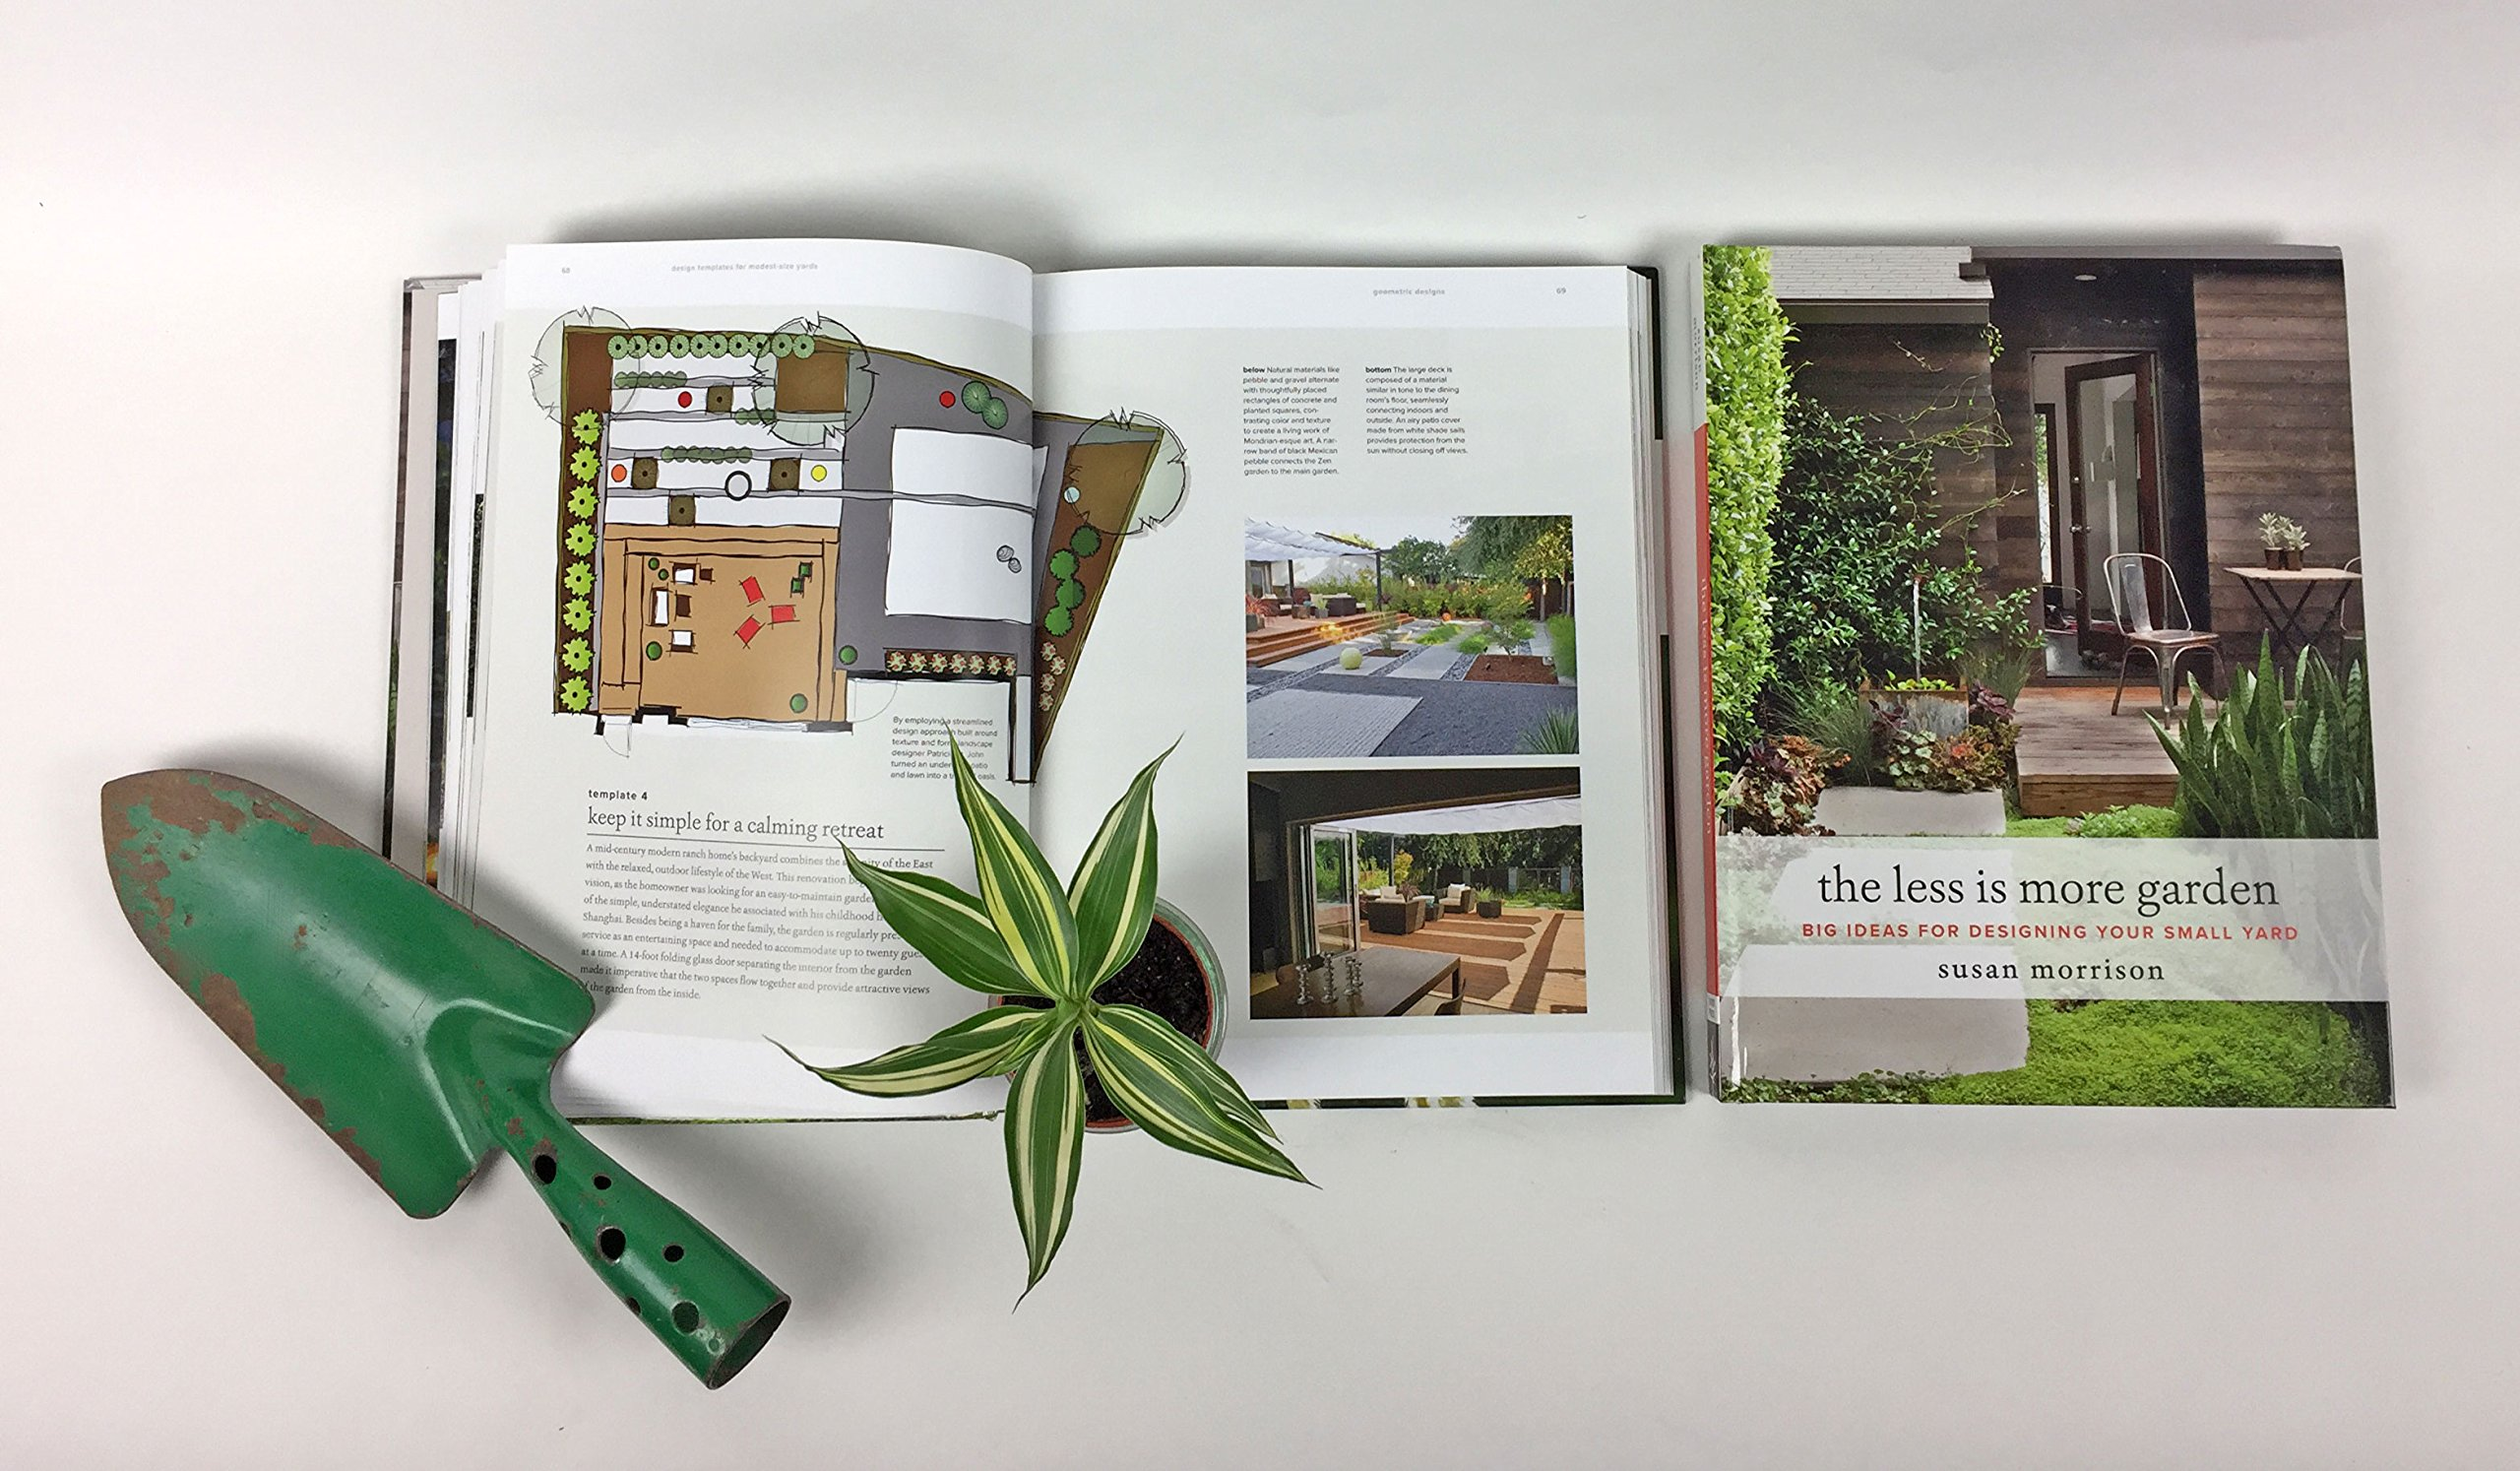 Awesome The Less Is More Garden: Big Ideas For Designing Your Small Yard: Susan  Morrison: 9781604697919: Amazon.com: Books